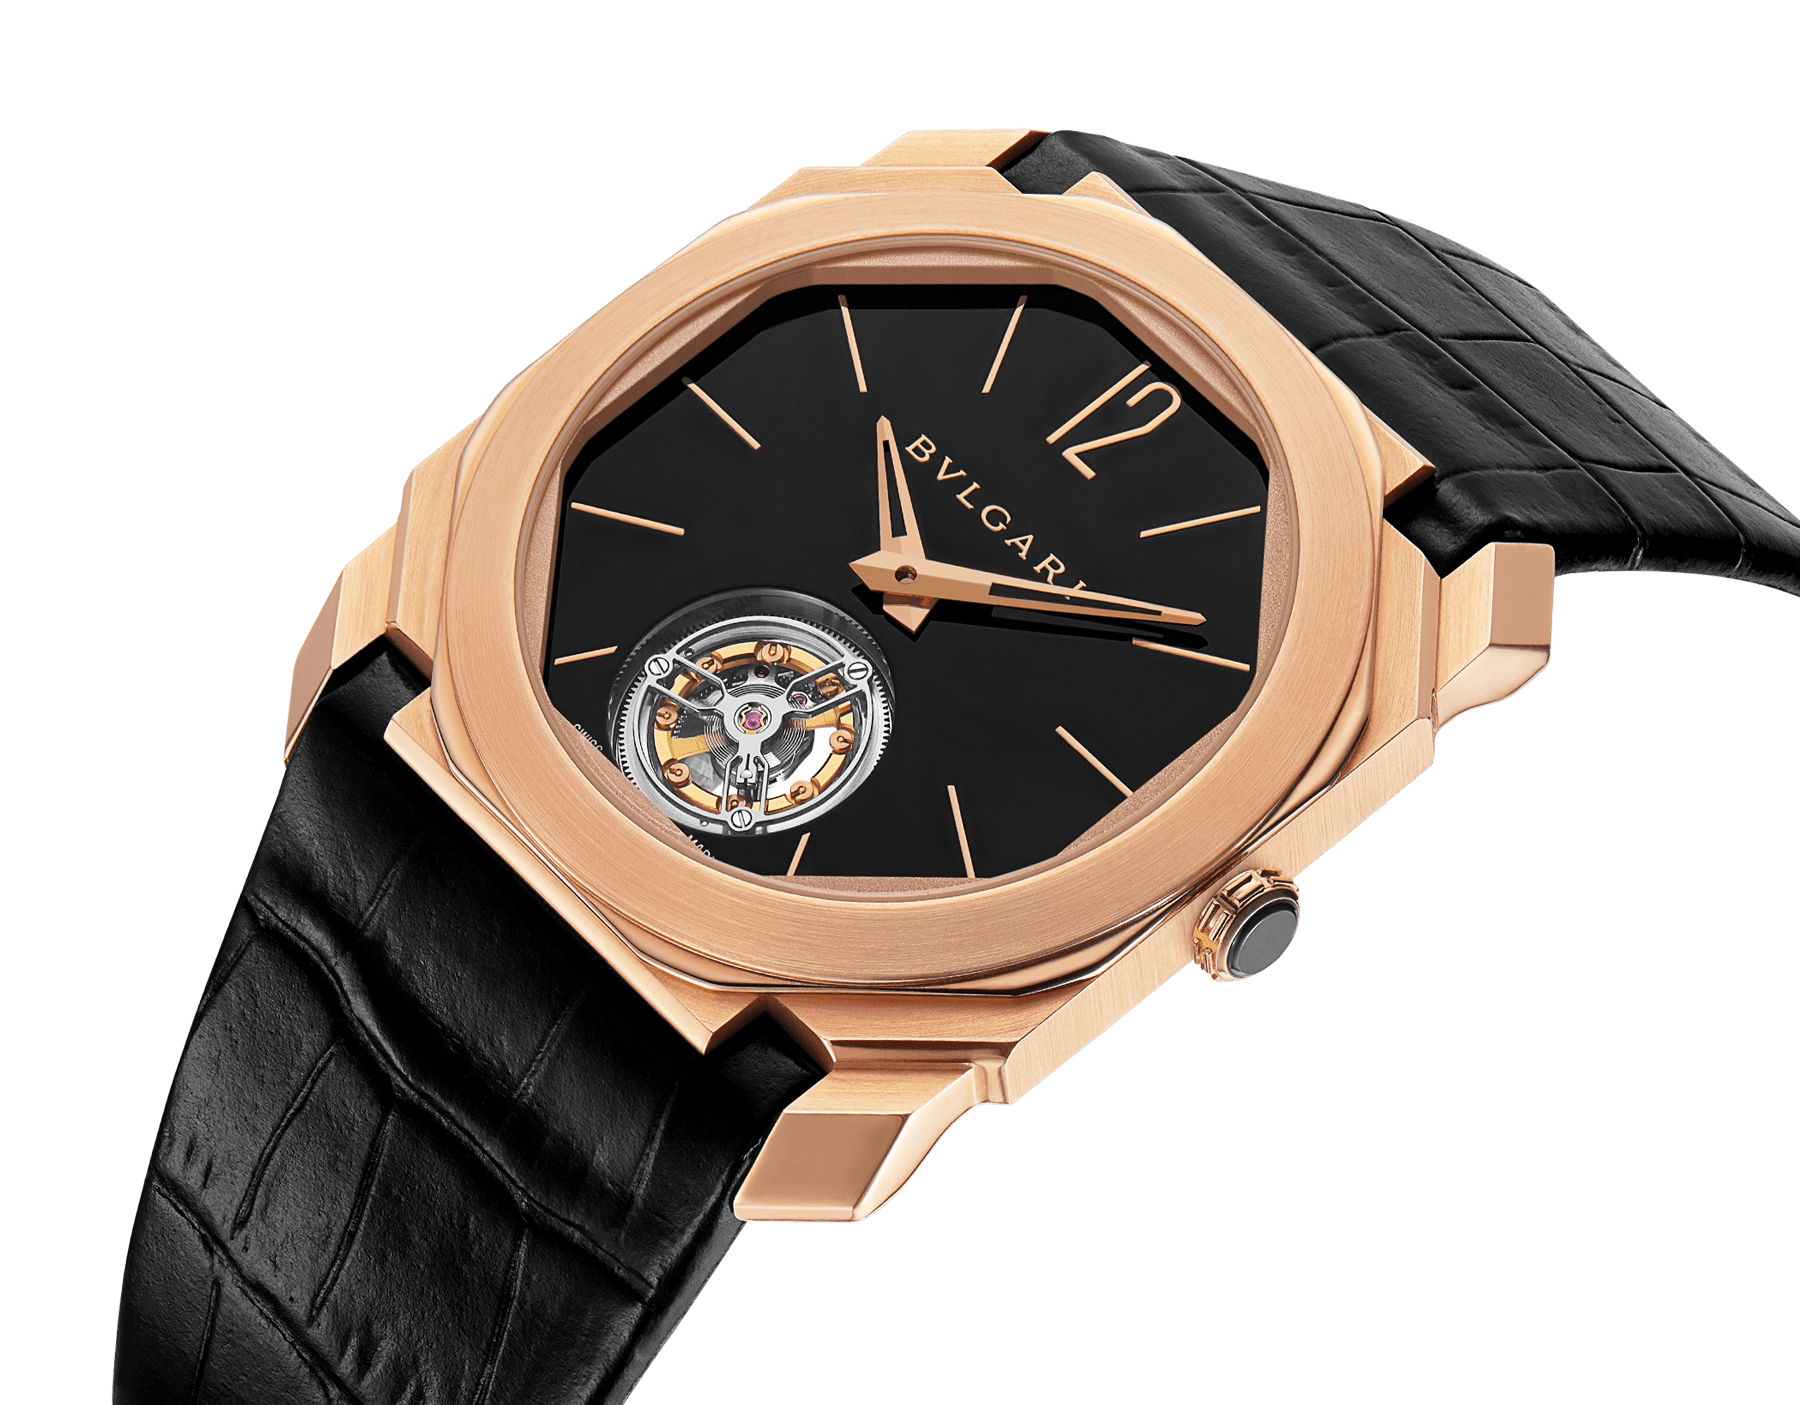 Octo Finissimo Tourbillon watch with extra thin mechanical manufacture movement, manual winding and ball-bearing system, 18 kt rose gold case, black lacquered dial with tourbillon see-through opening and black alligator bracelet. 102346 image 2